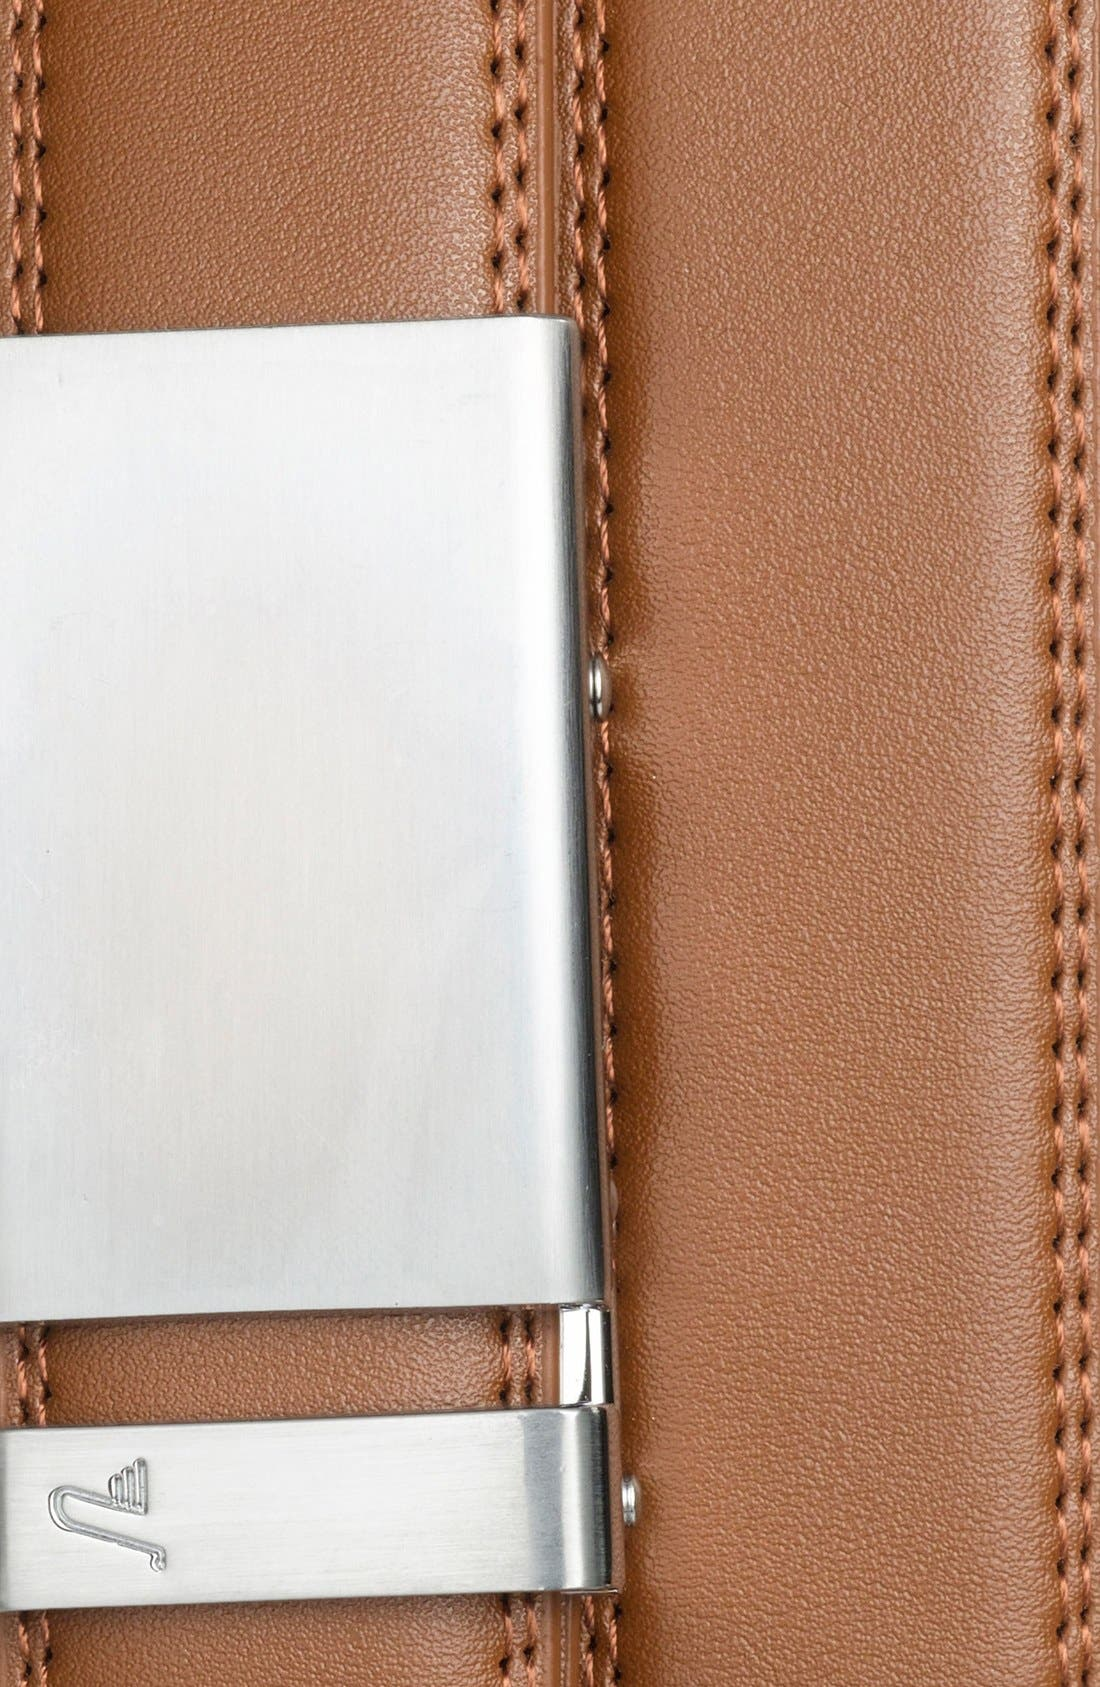 'Cocoa' Leather Belt,                             Alternate thumbnail 2, color,                             ALLOY/ TAN